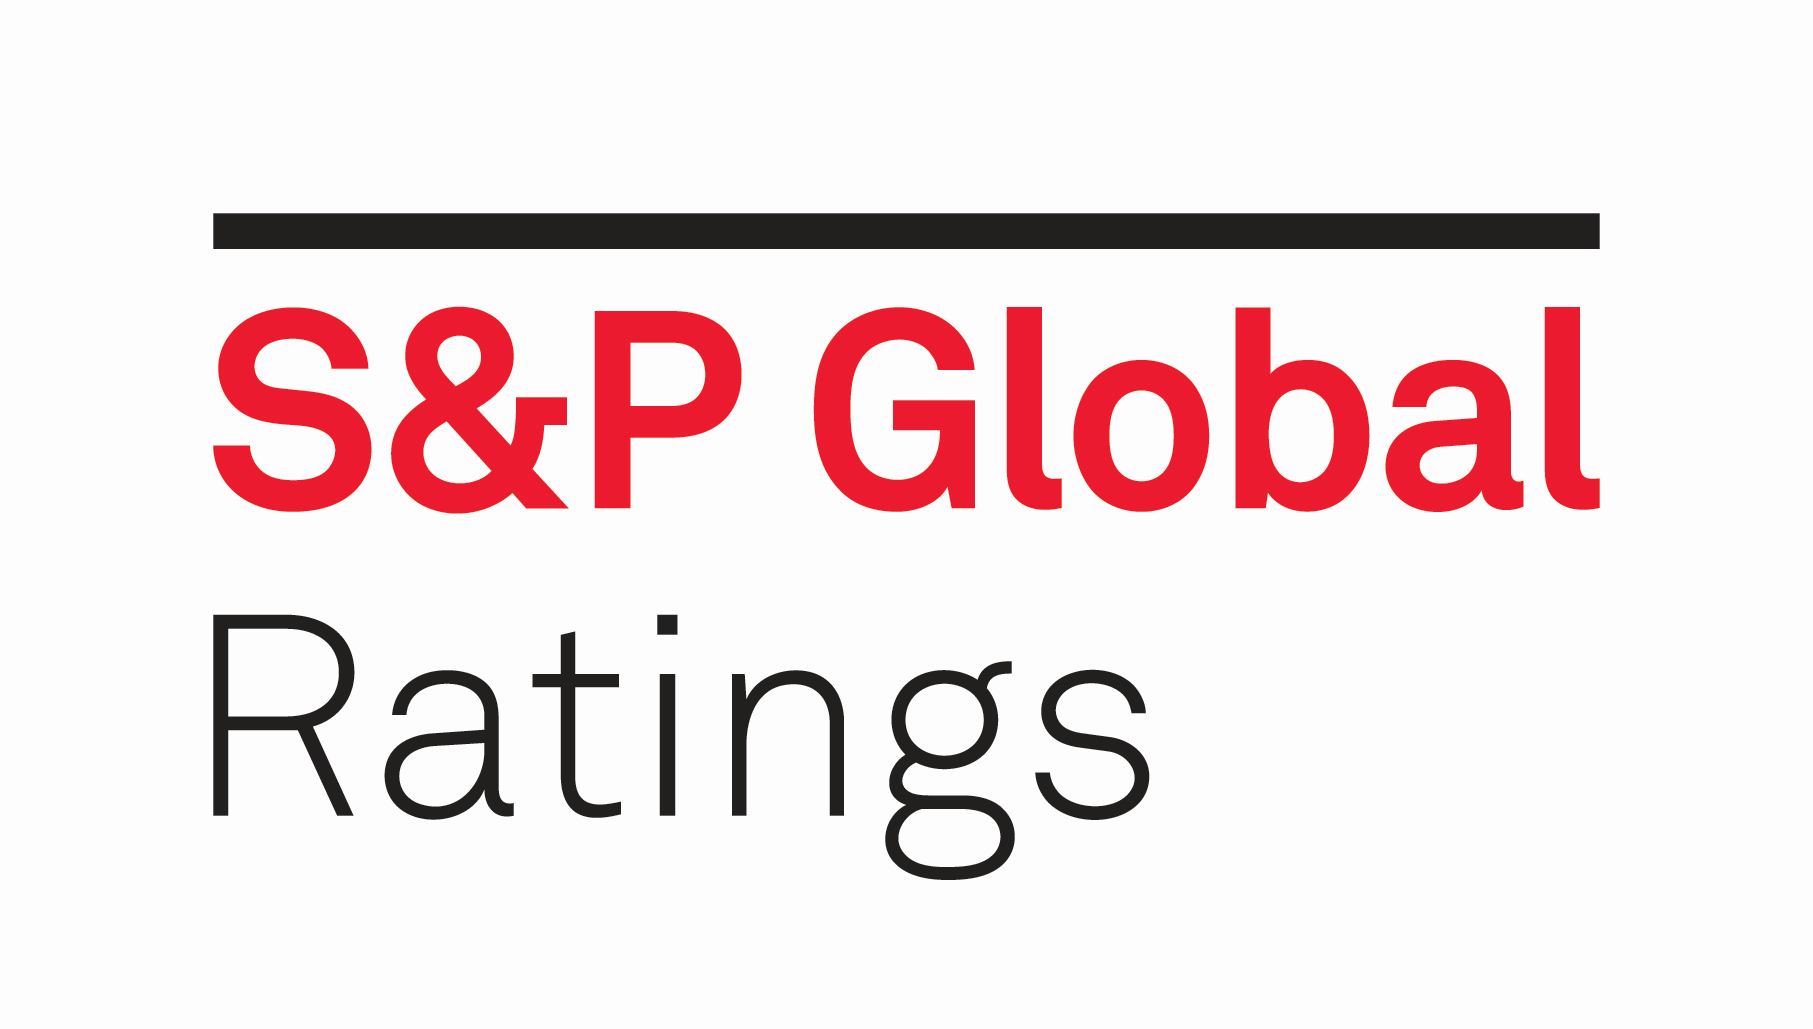 S&P Global Ratings forecasts Azerbaijani manat's exchange rate